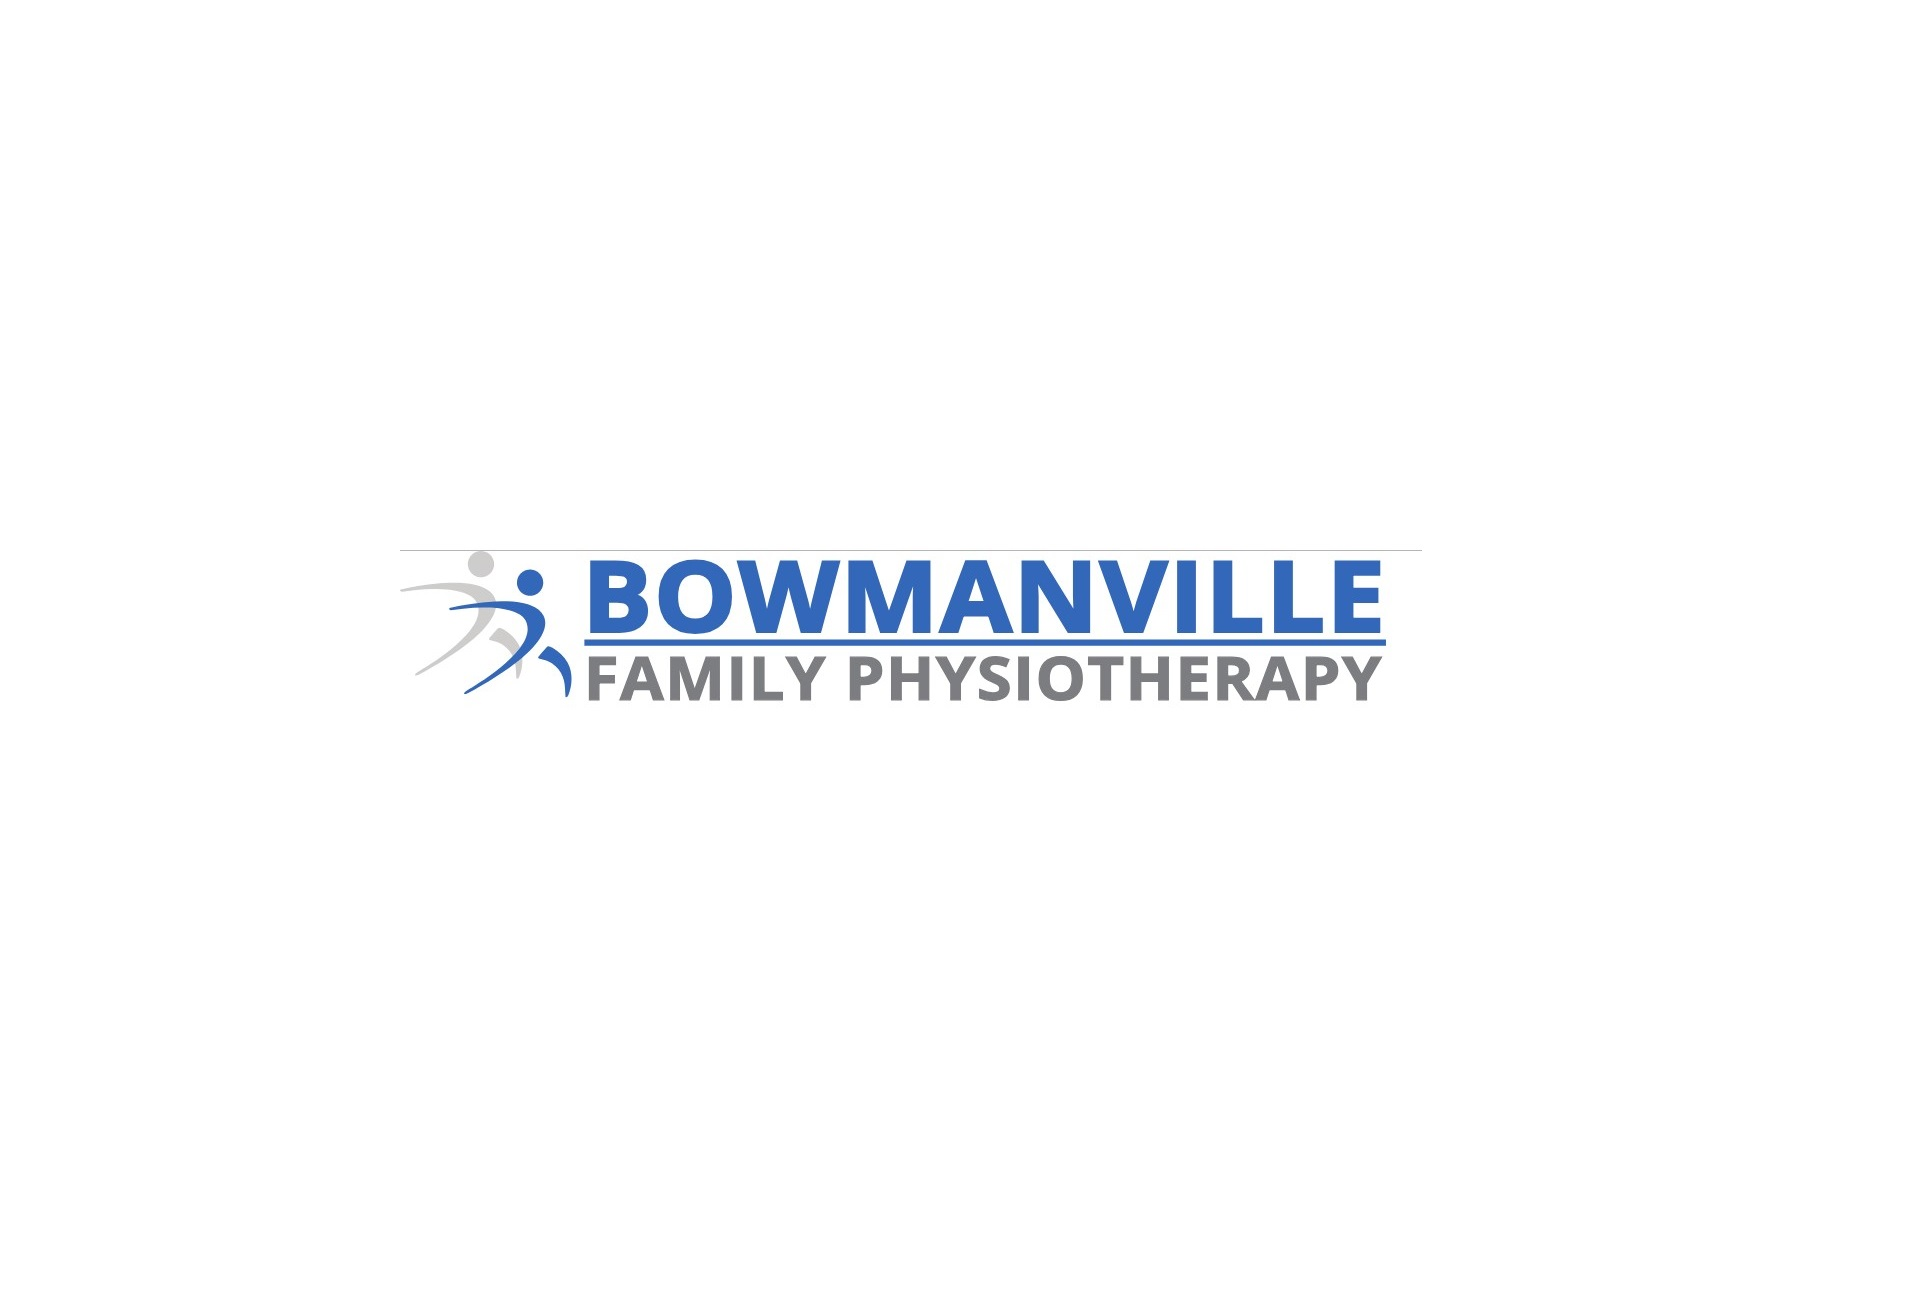 Bowmanville Family Physiotherapy and Sports Medicine Centre